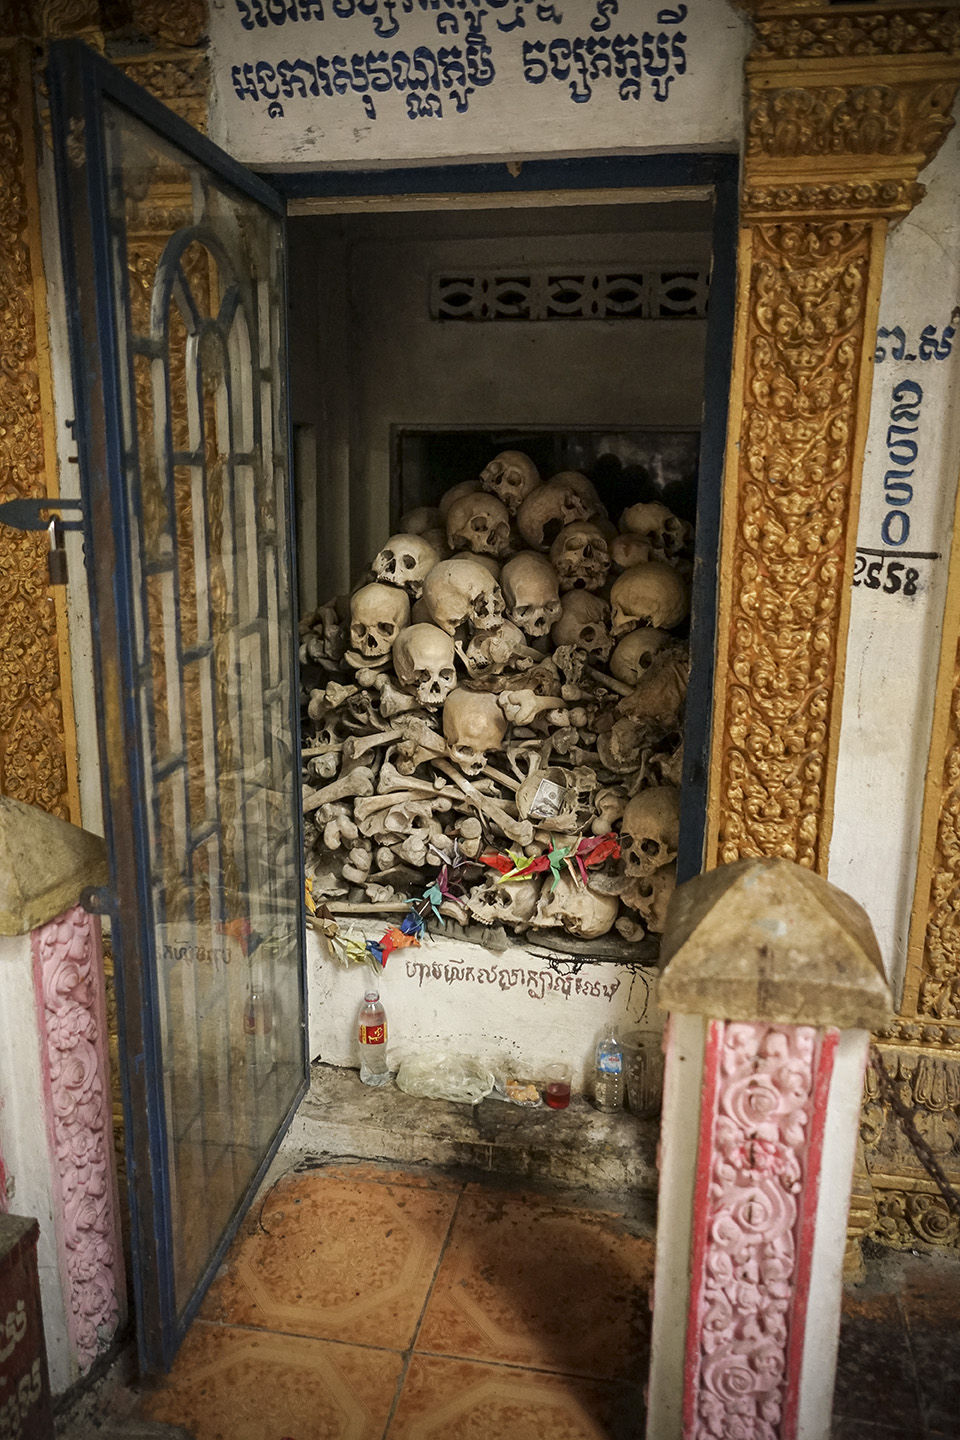 Memorial to those killed by the Khmer Rouge